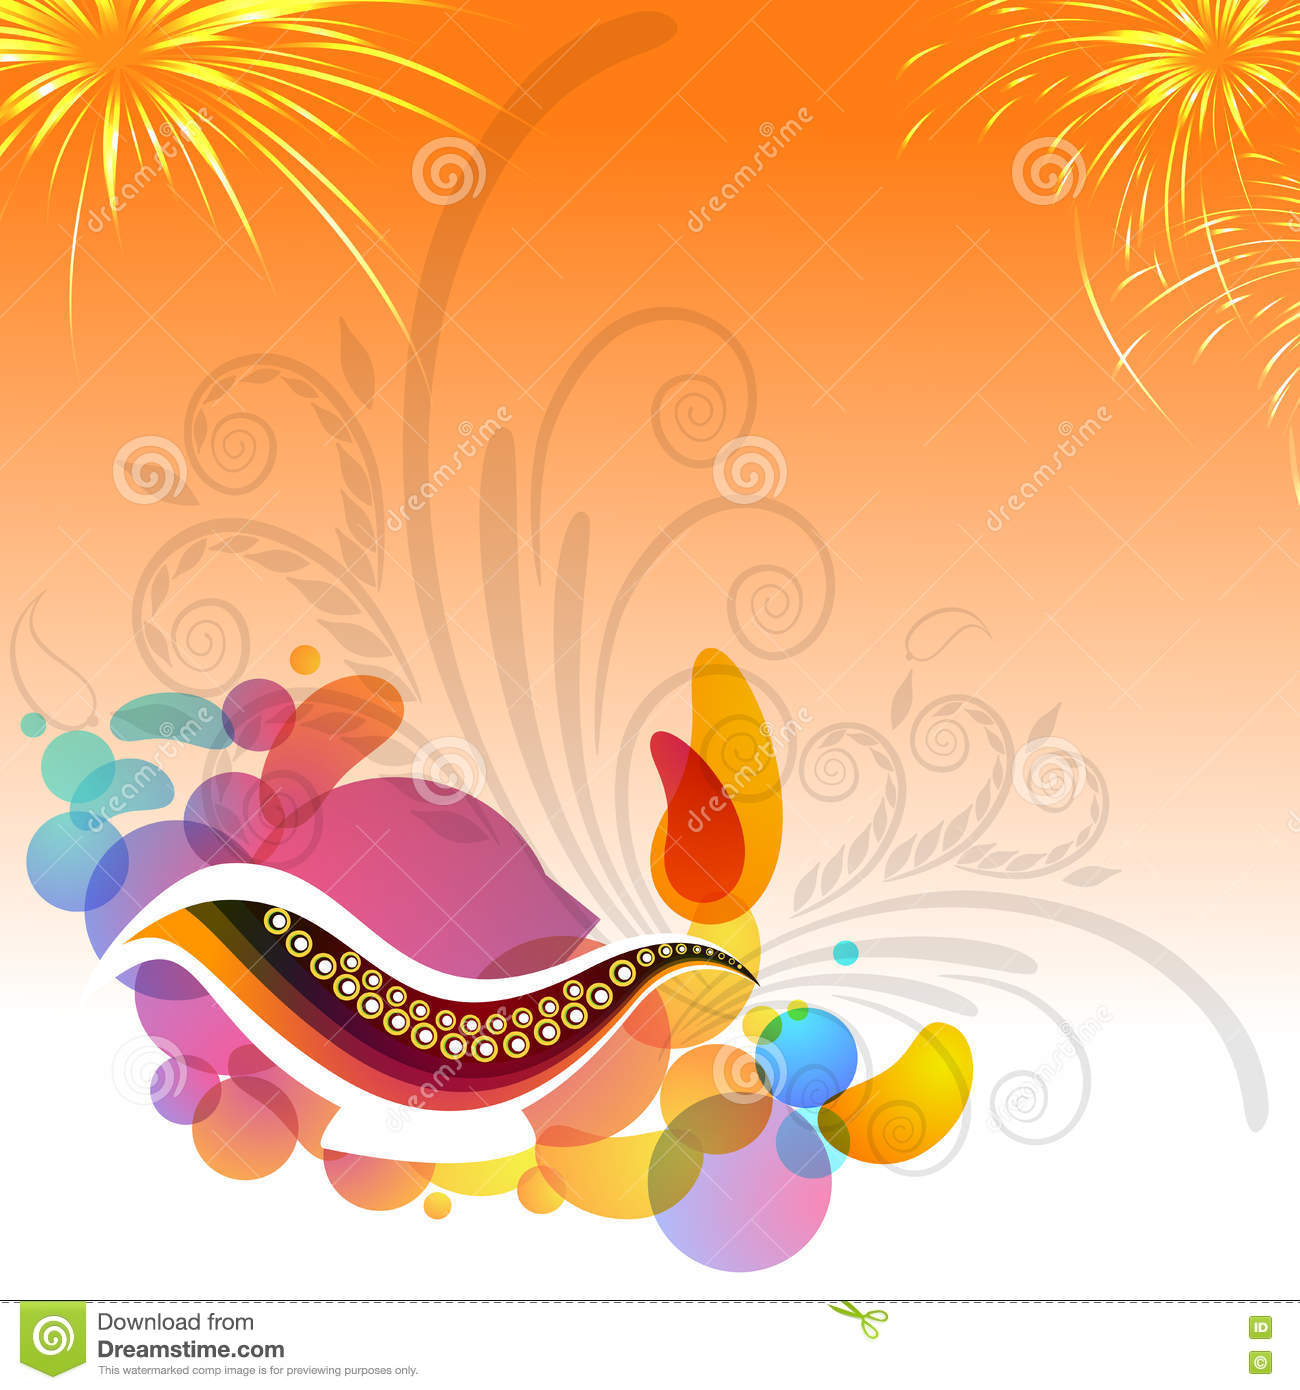 Greeting card for happy diwali celebration stock illustration greeting card for happy diwali celebration m4hsunfo